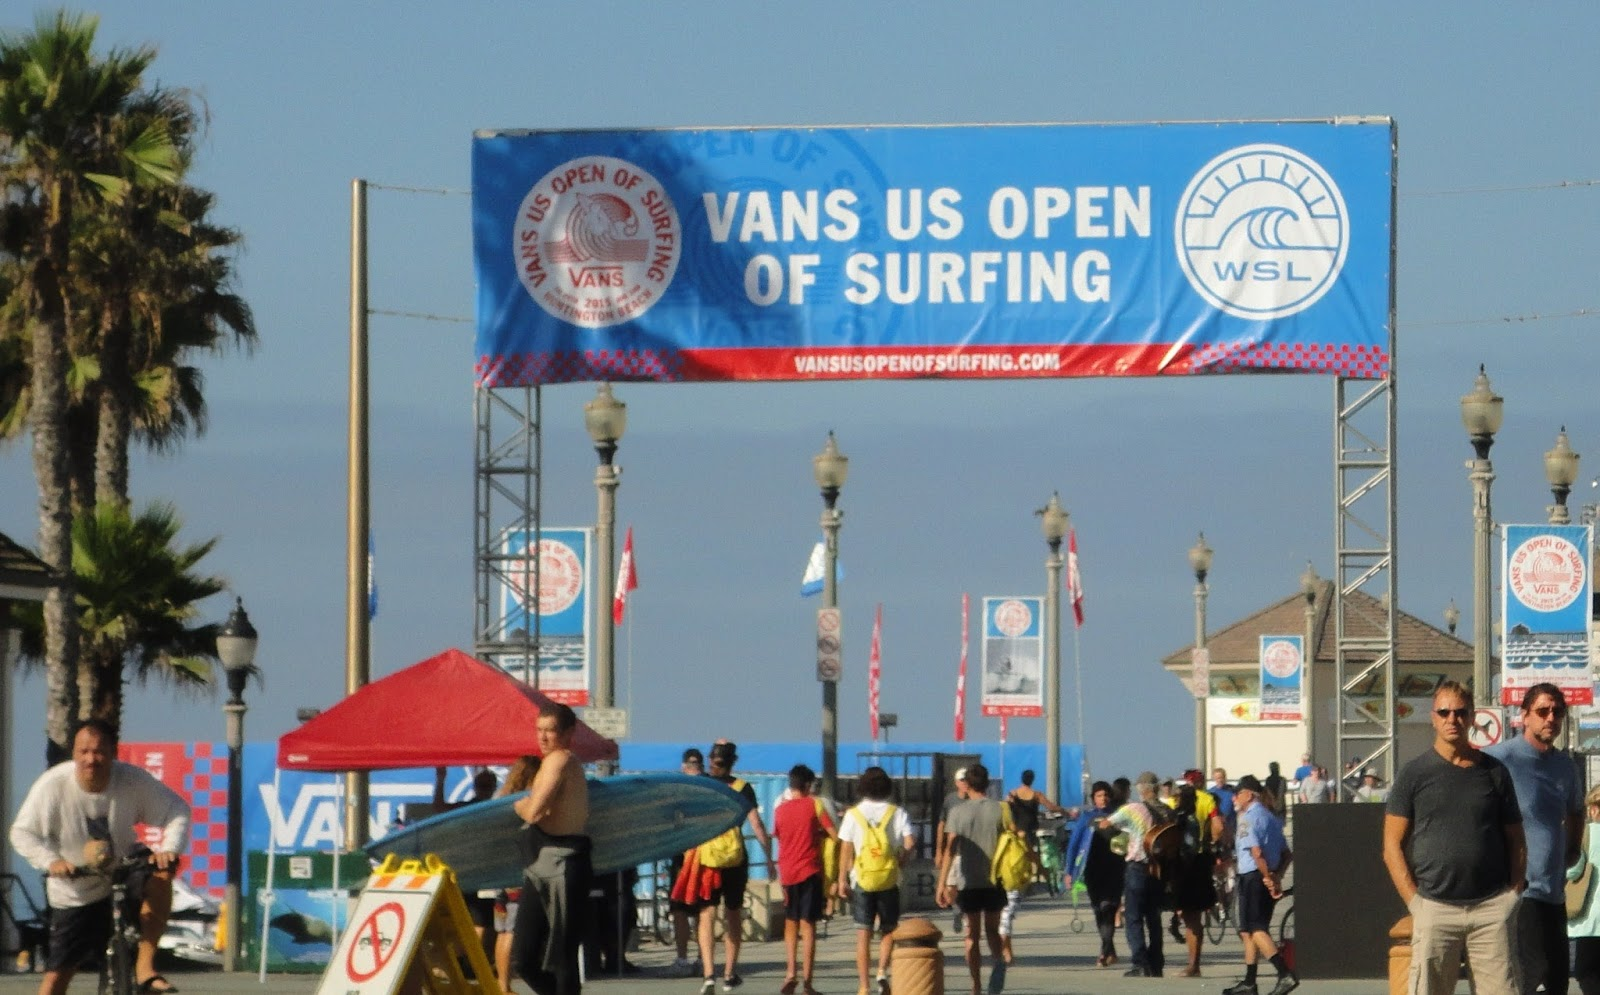 4a91a9dfda Action footwear and apparel brand Vans is back on board for another US Open  of Surfing (USOS) in Huntington Beach (July 25 – August 2).